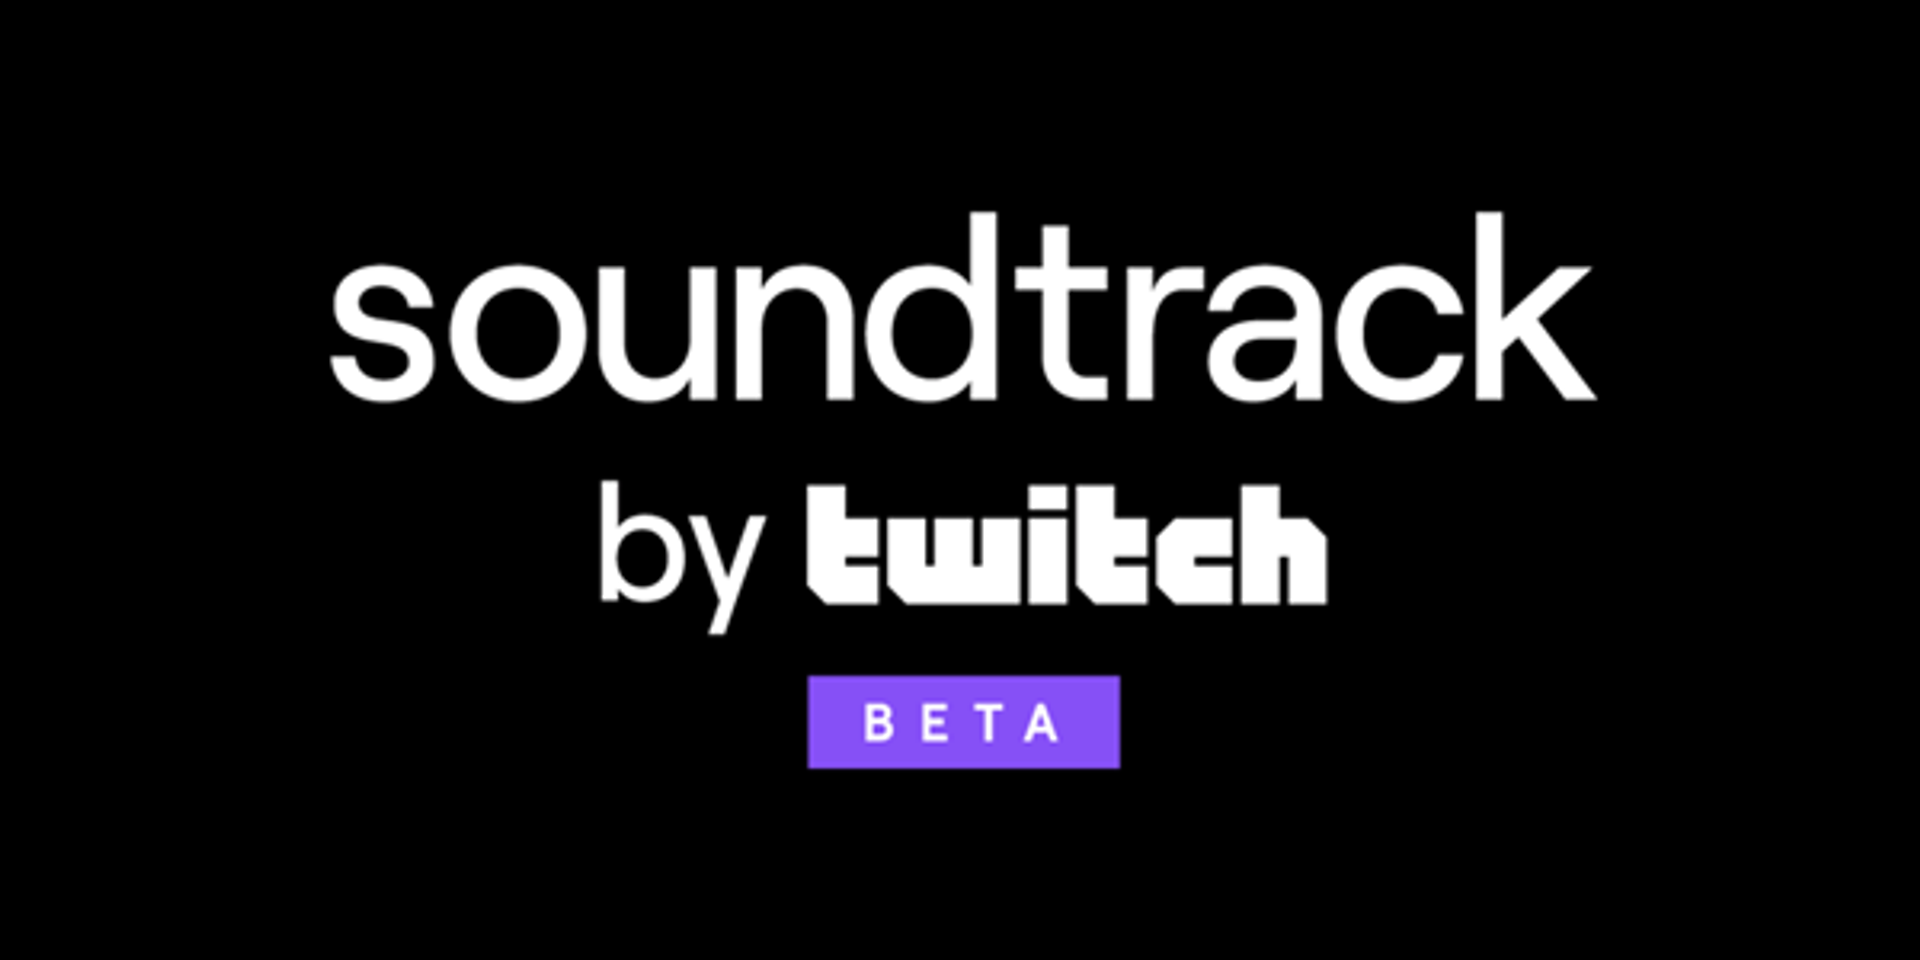 Twitch Soundtrack gives streamers access to rights-cleared music library